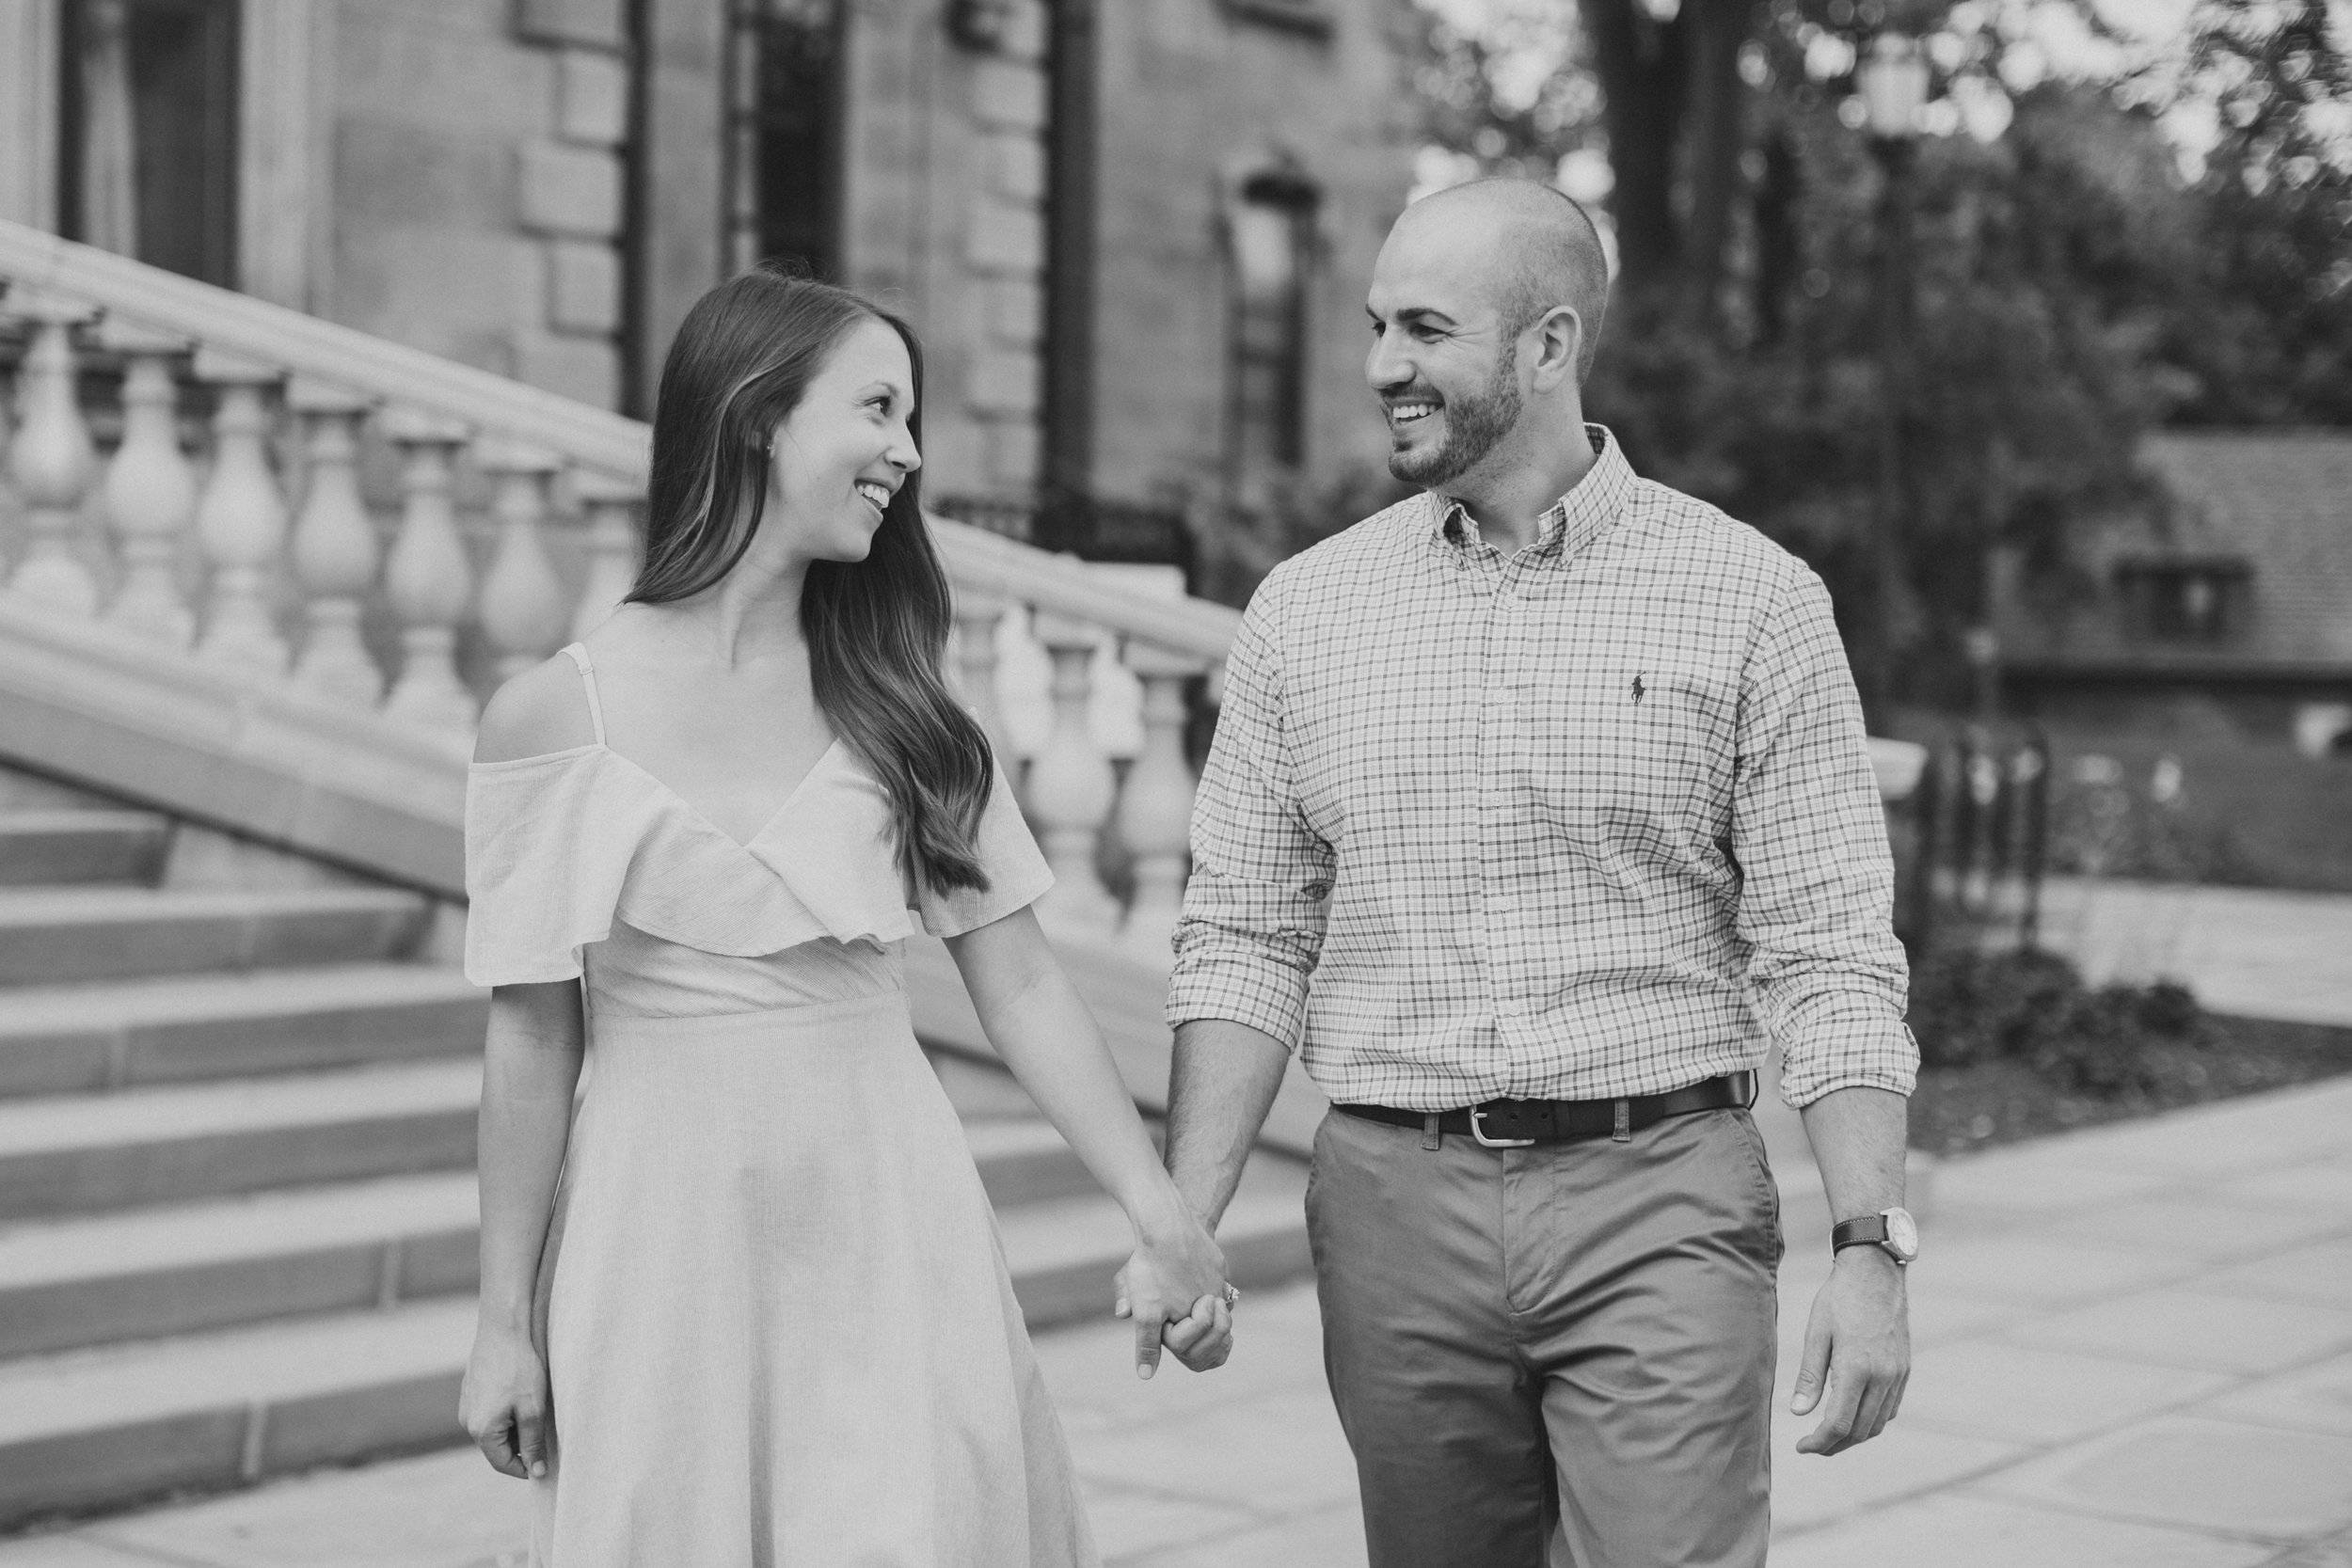 University of Scranton Engagement Session Photos_JDP-16.jpg